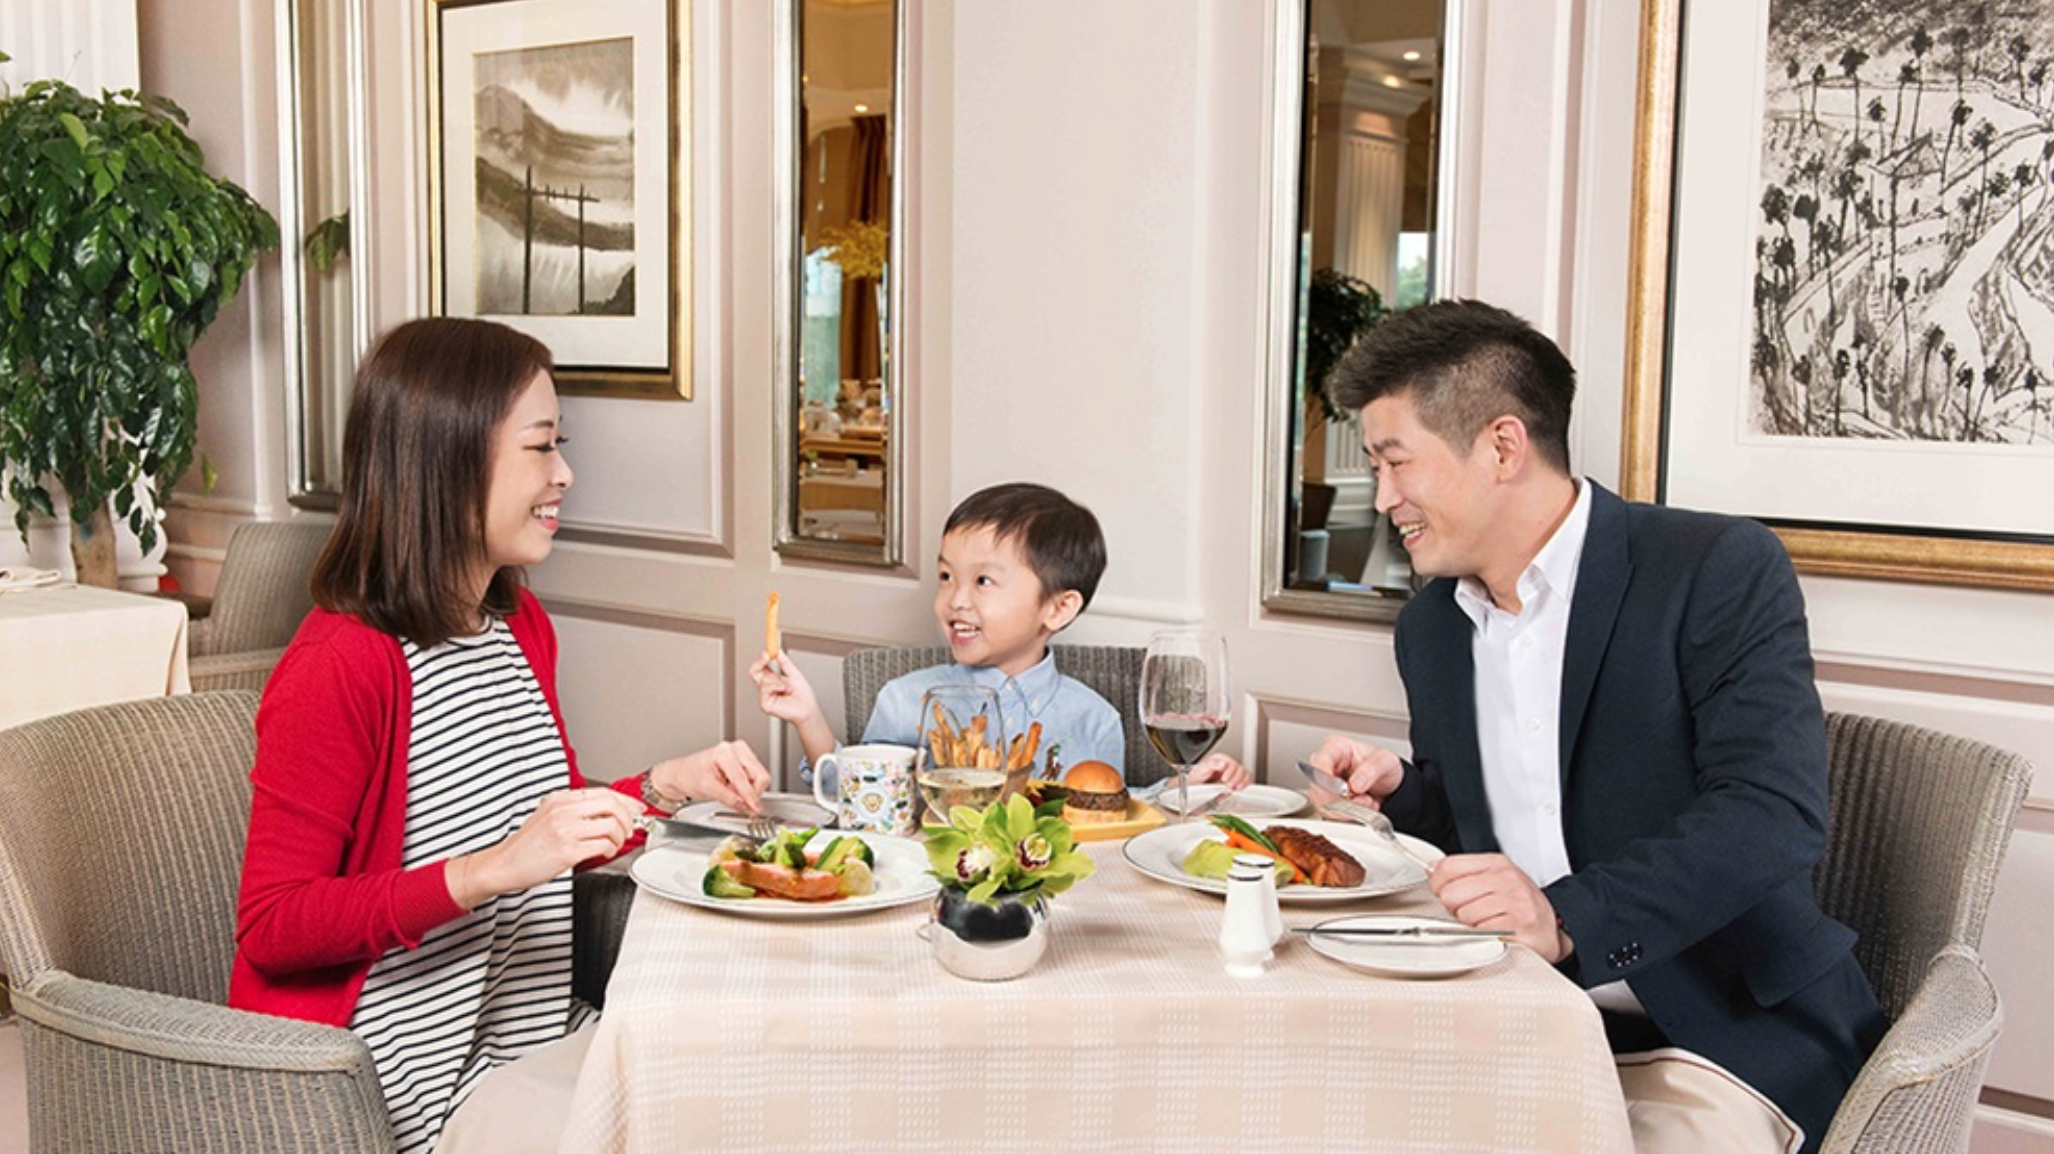 the peninsula Father's Day 2021 offers